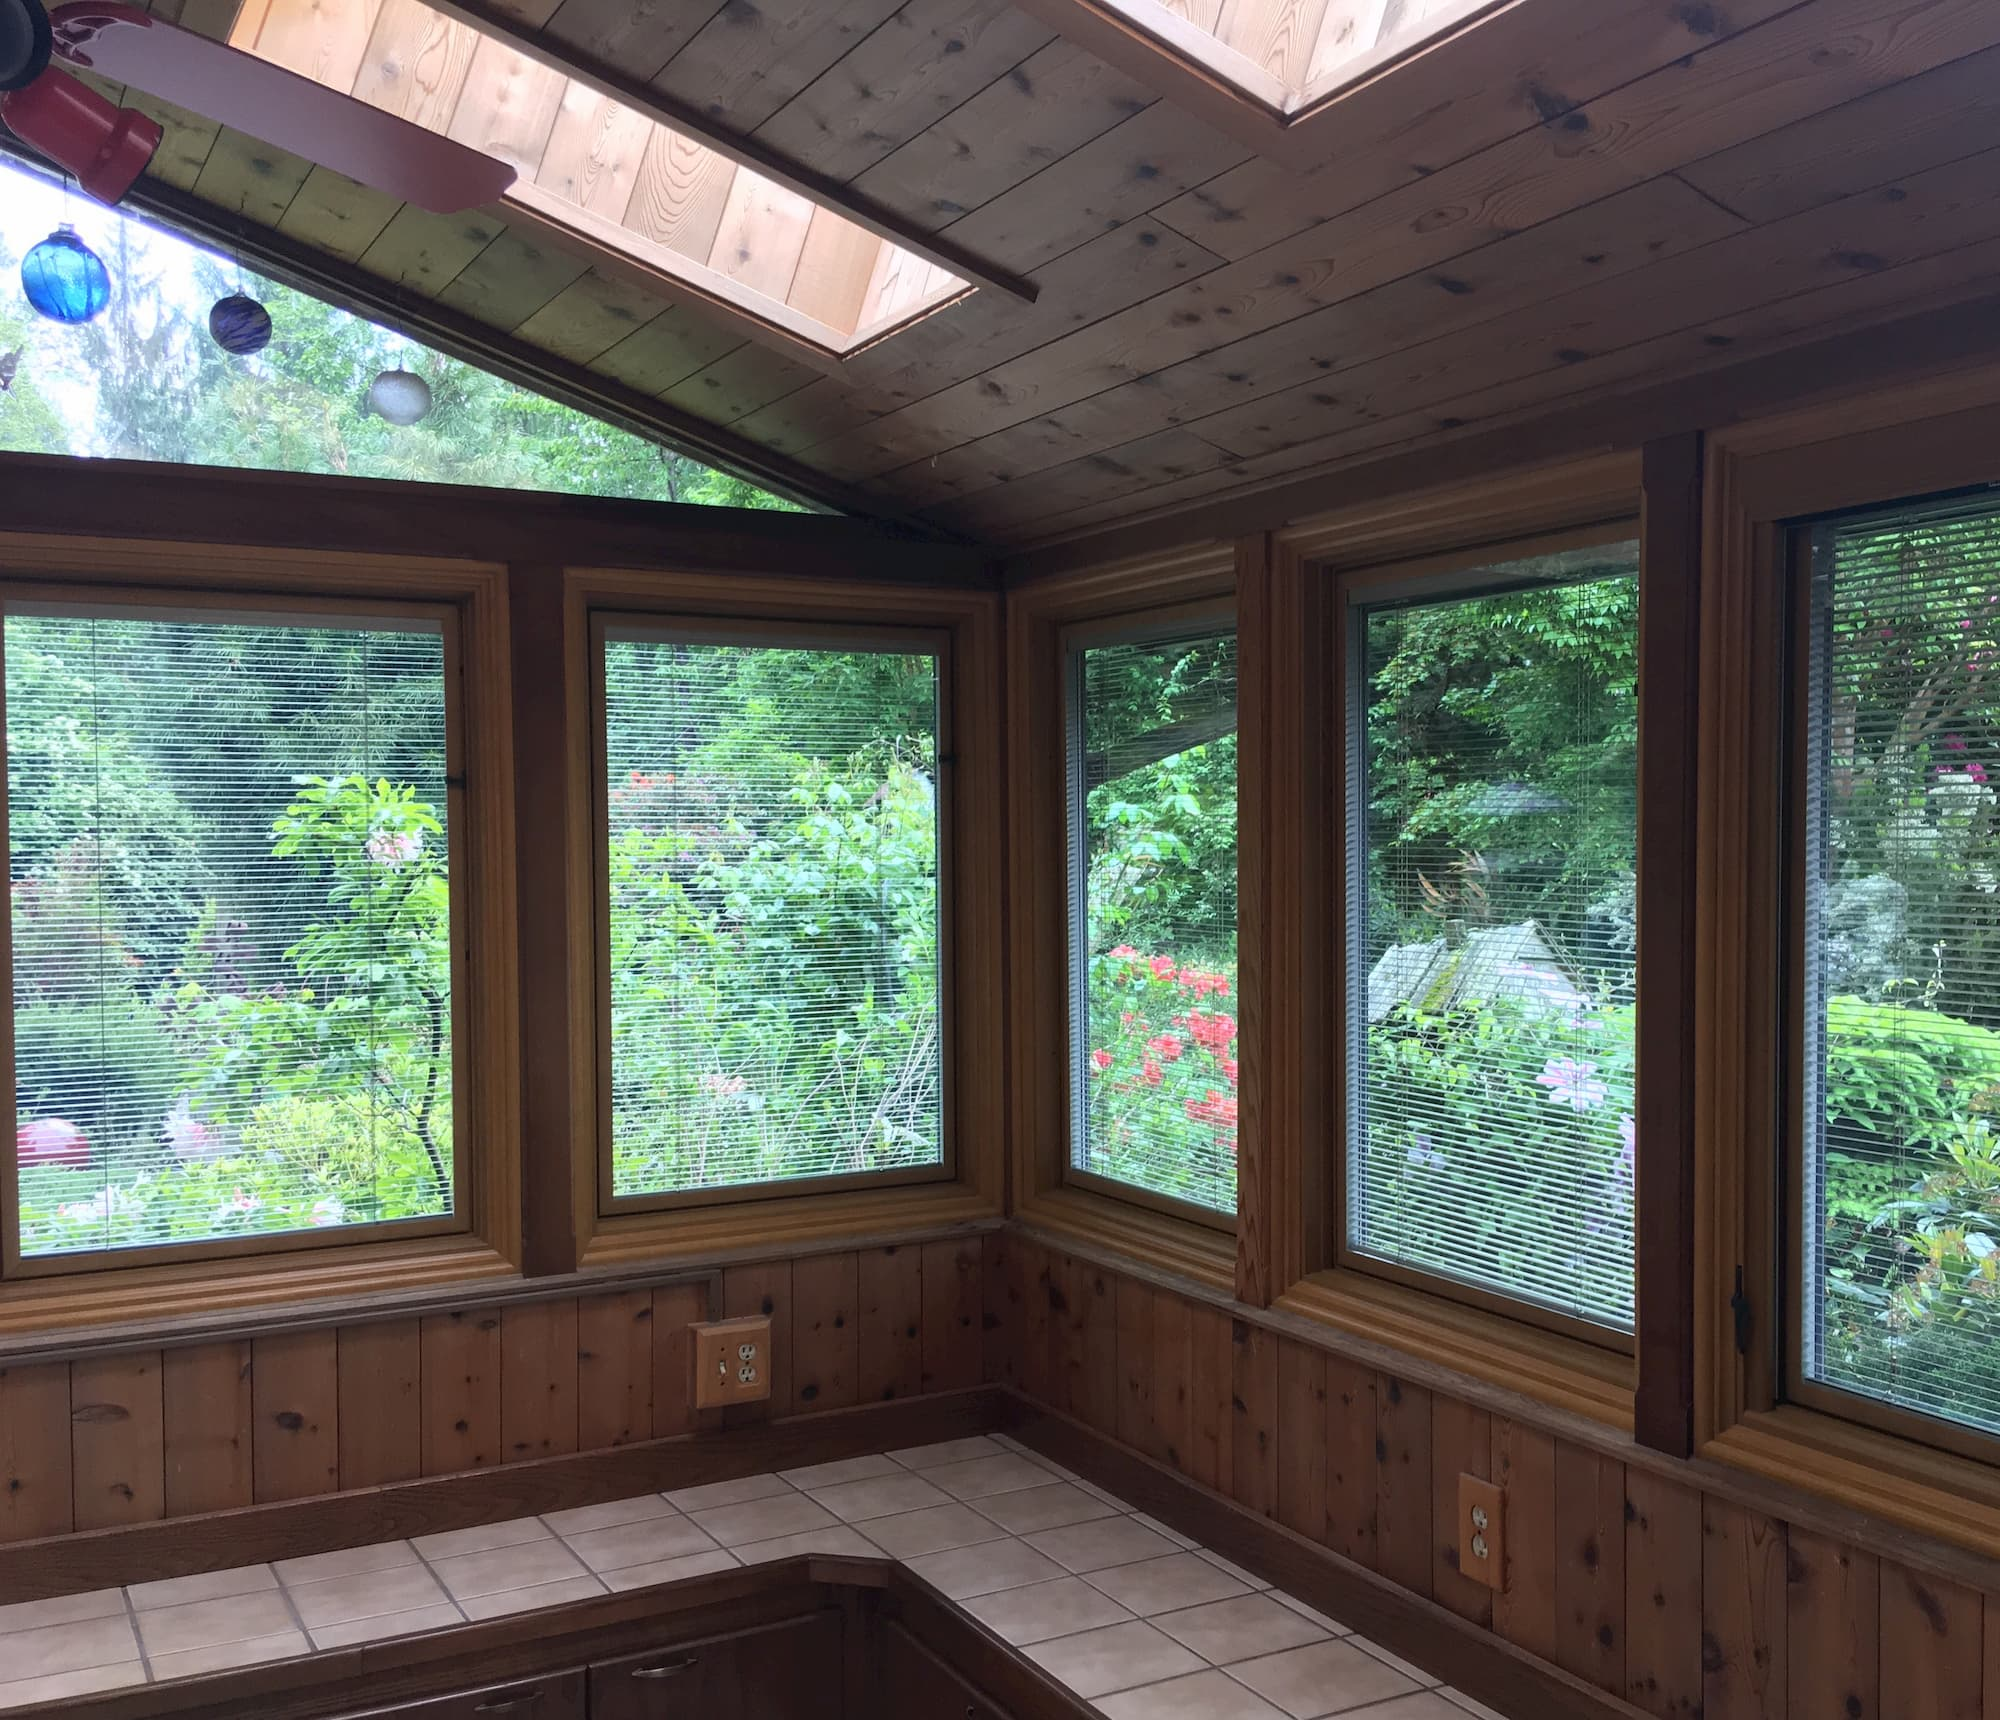 New Pella windows with between-the-glass blinds installed in a sun room.